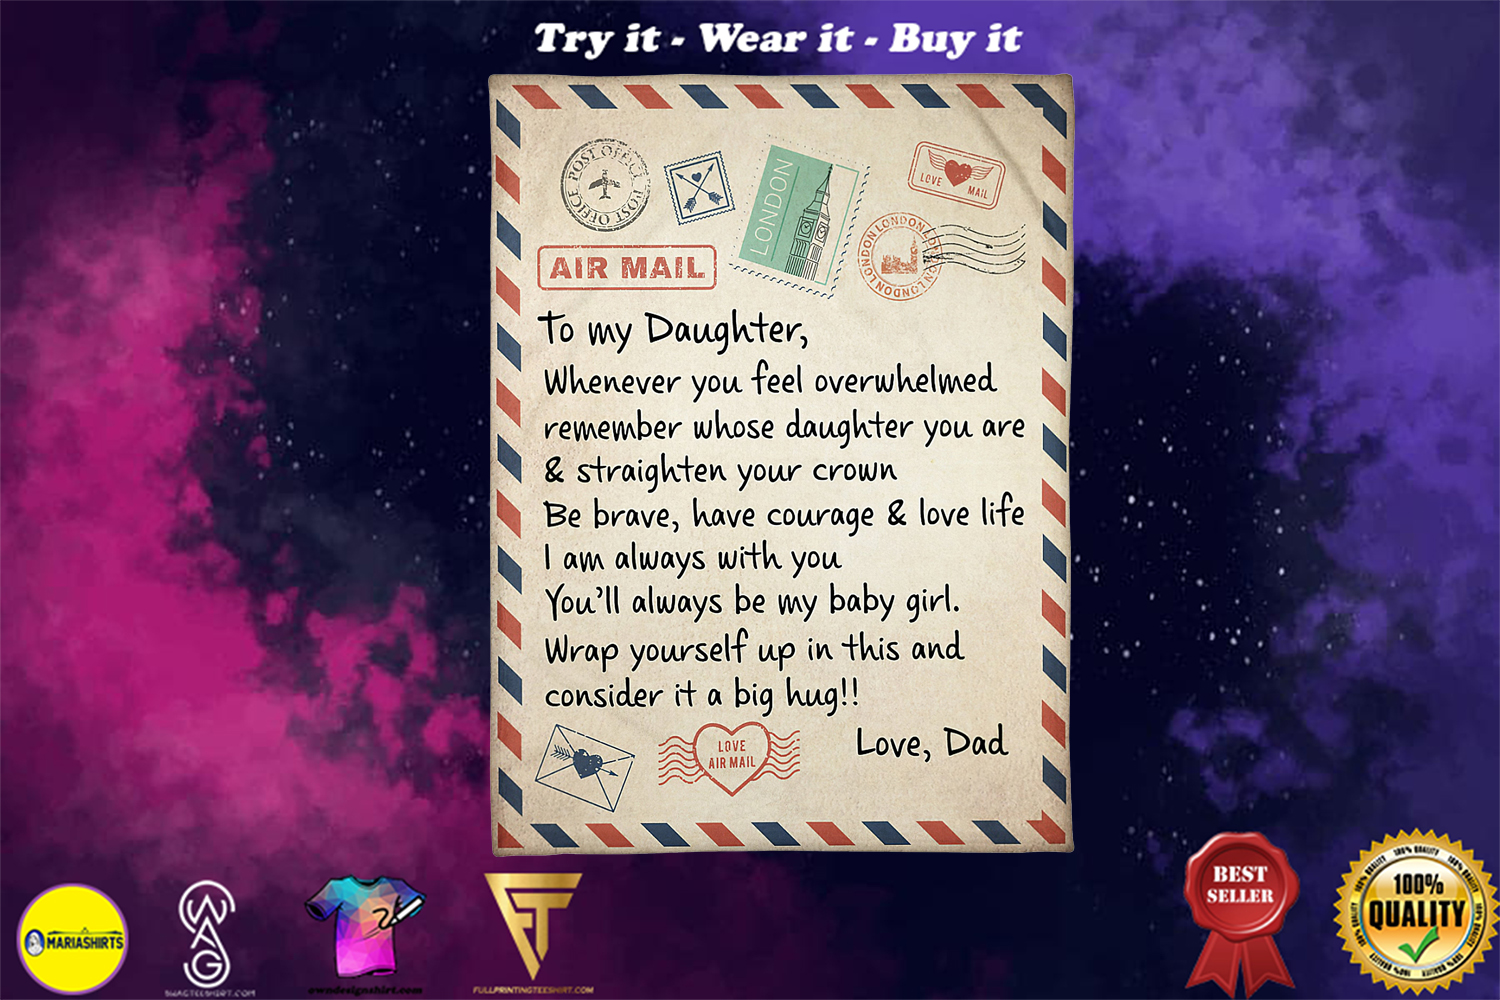 [special edition] letter to my daughter whenever you feel overwhelmed love dad blanket - maria